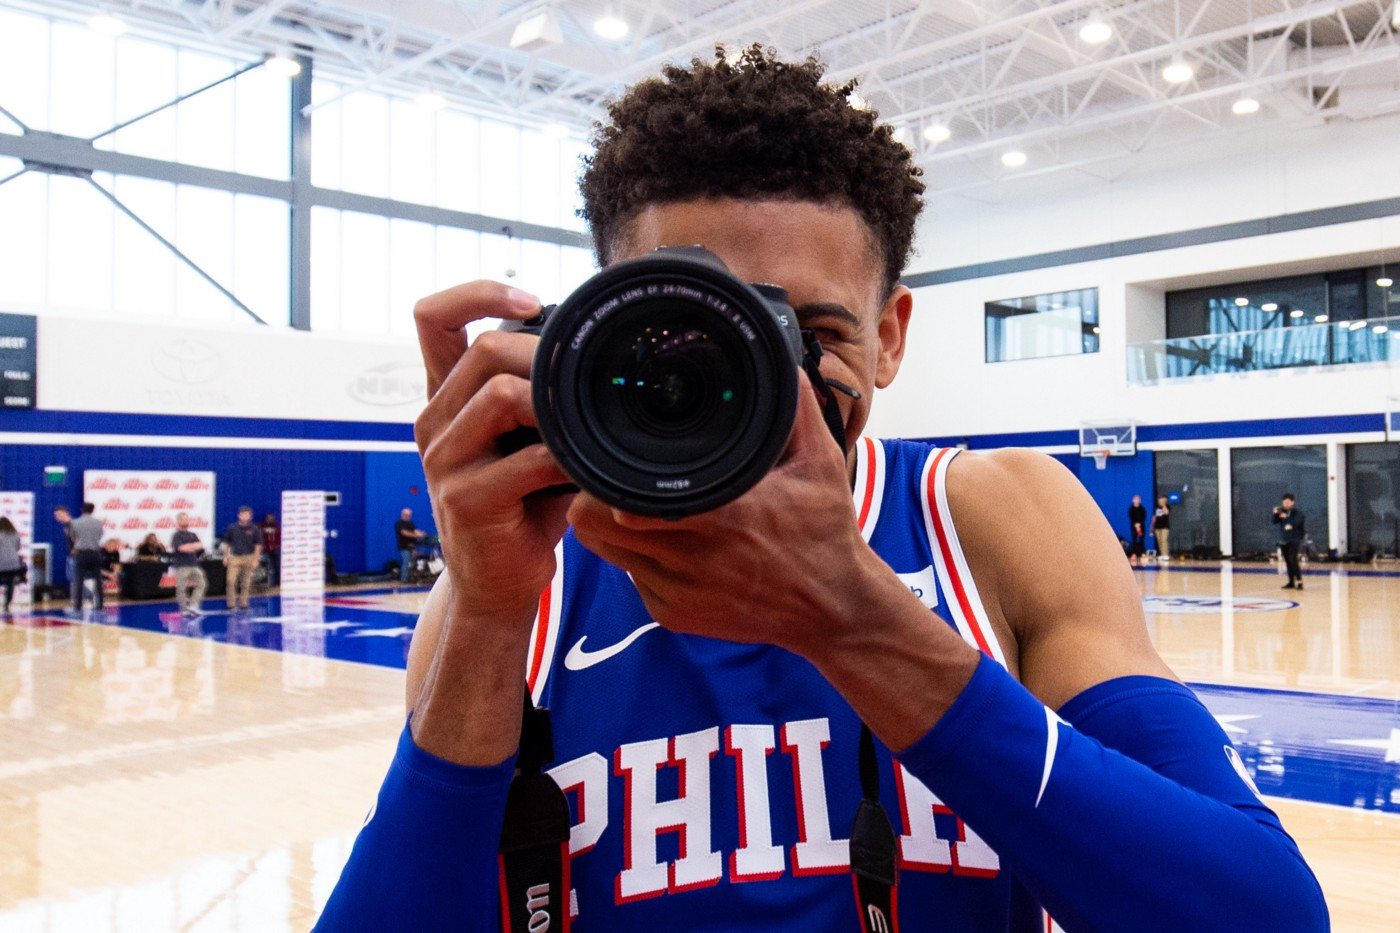 A basketball player on the court prepares to take a picture.